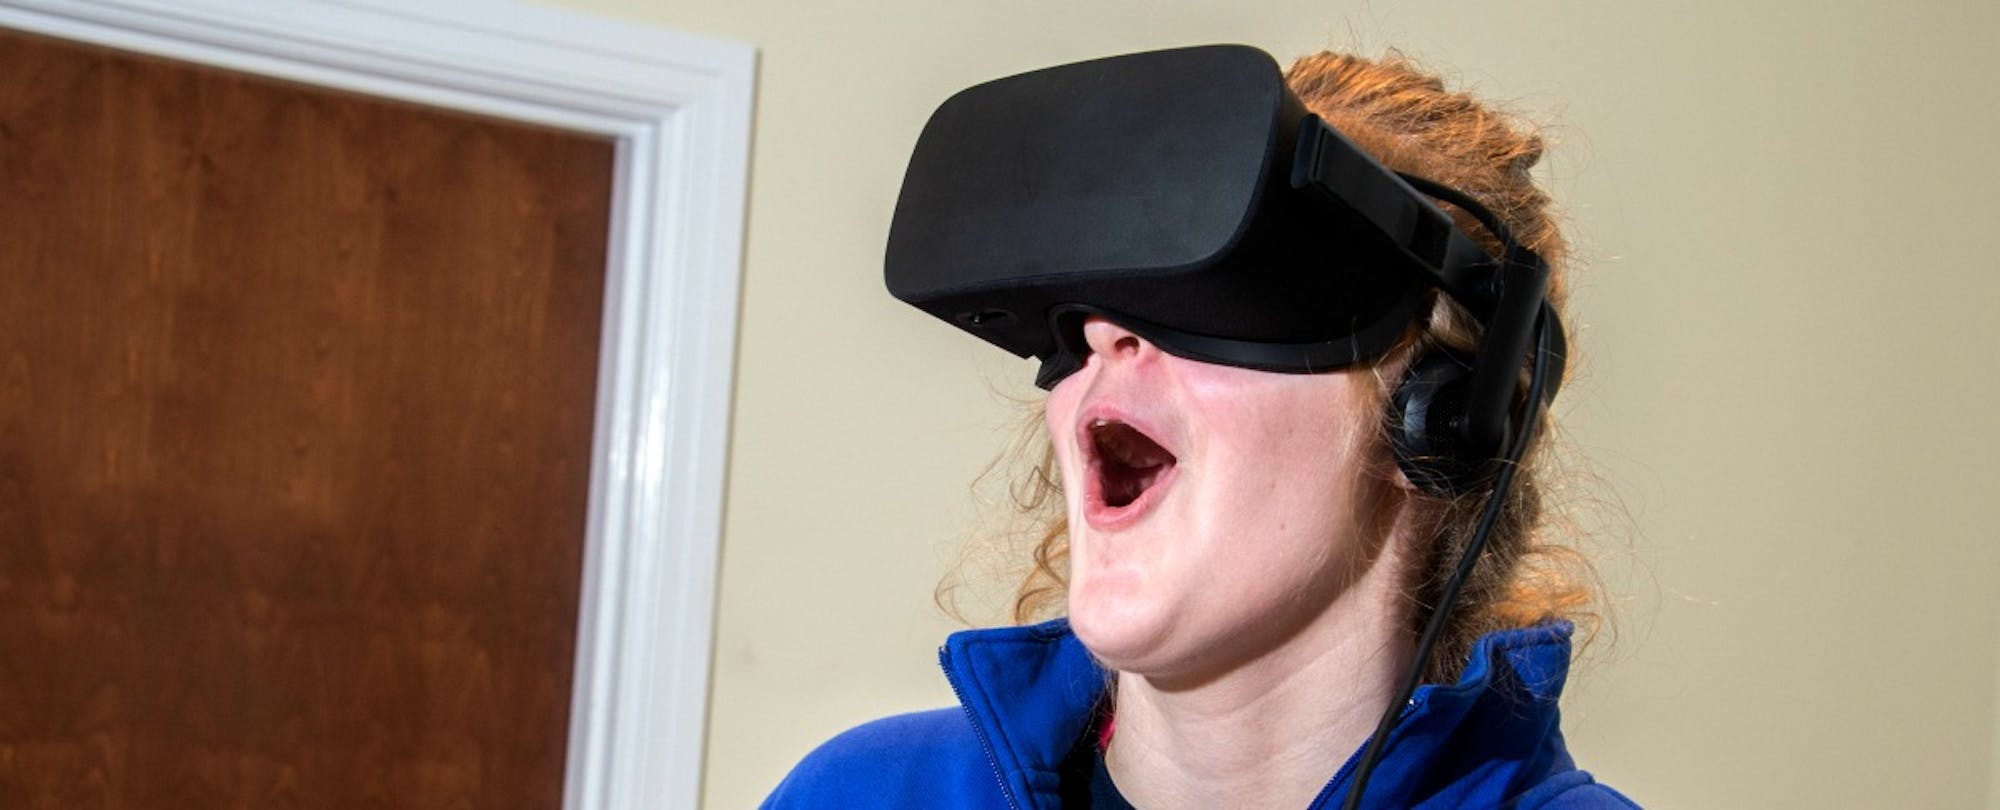 As Instructors Experiment With VR, a Shift From 'Looking' to 'Interacting'